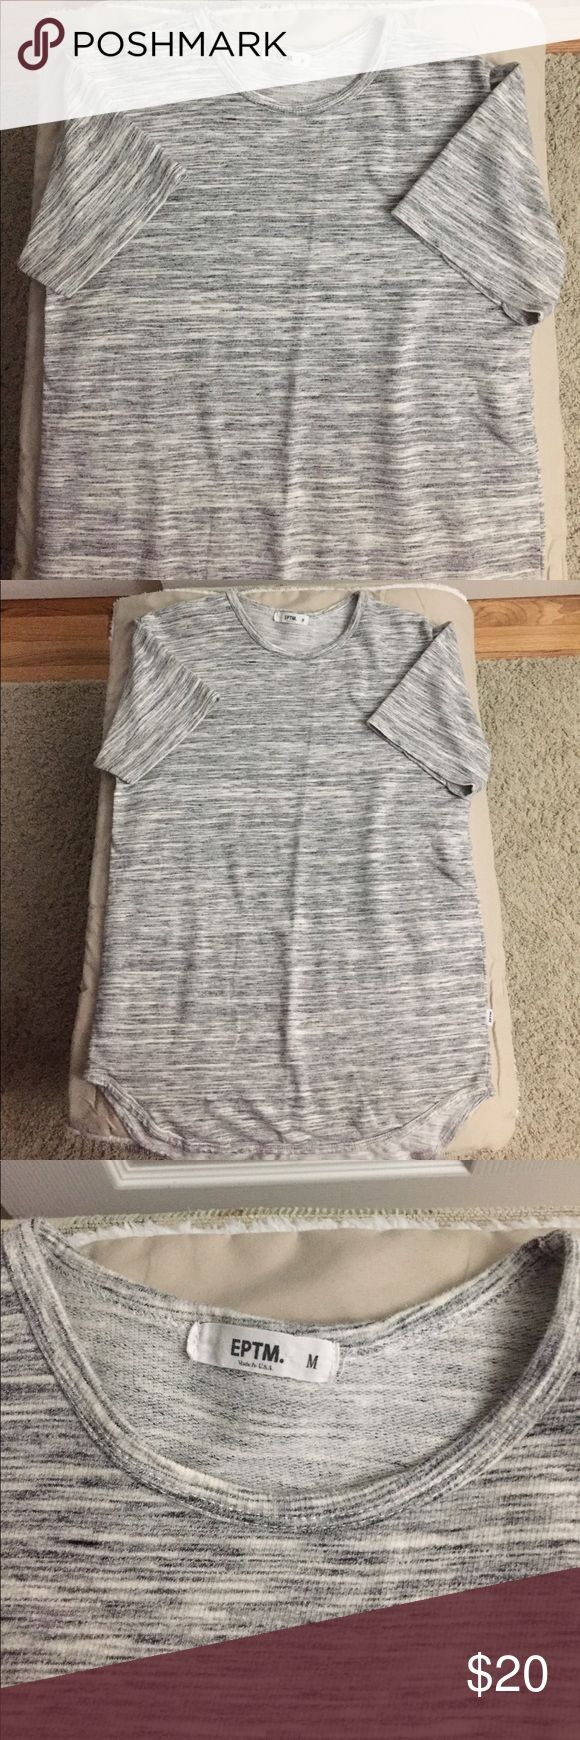 EPTM scallop T-shirt men's size medium EPTM scallop T-shirt men's size medium. Used in very good condition no stains holes or tears. Send me a reasonable offer! EPTM Shirts Tees - Short Sleeve